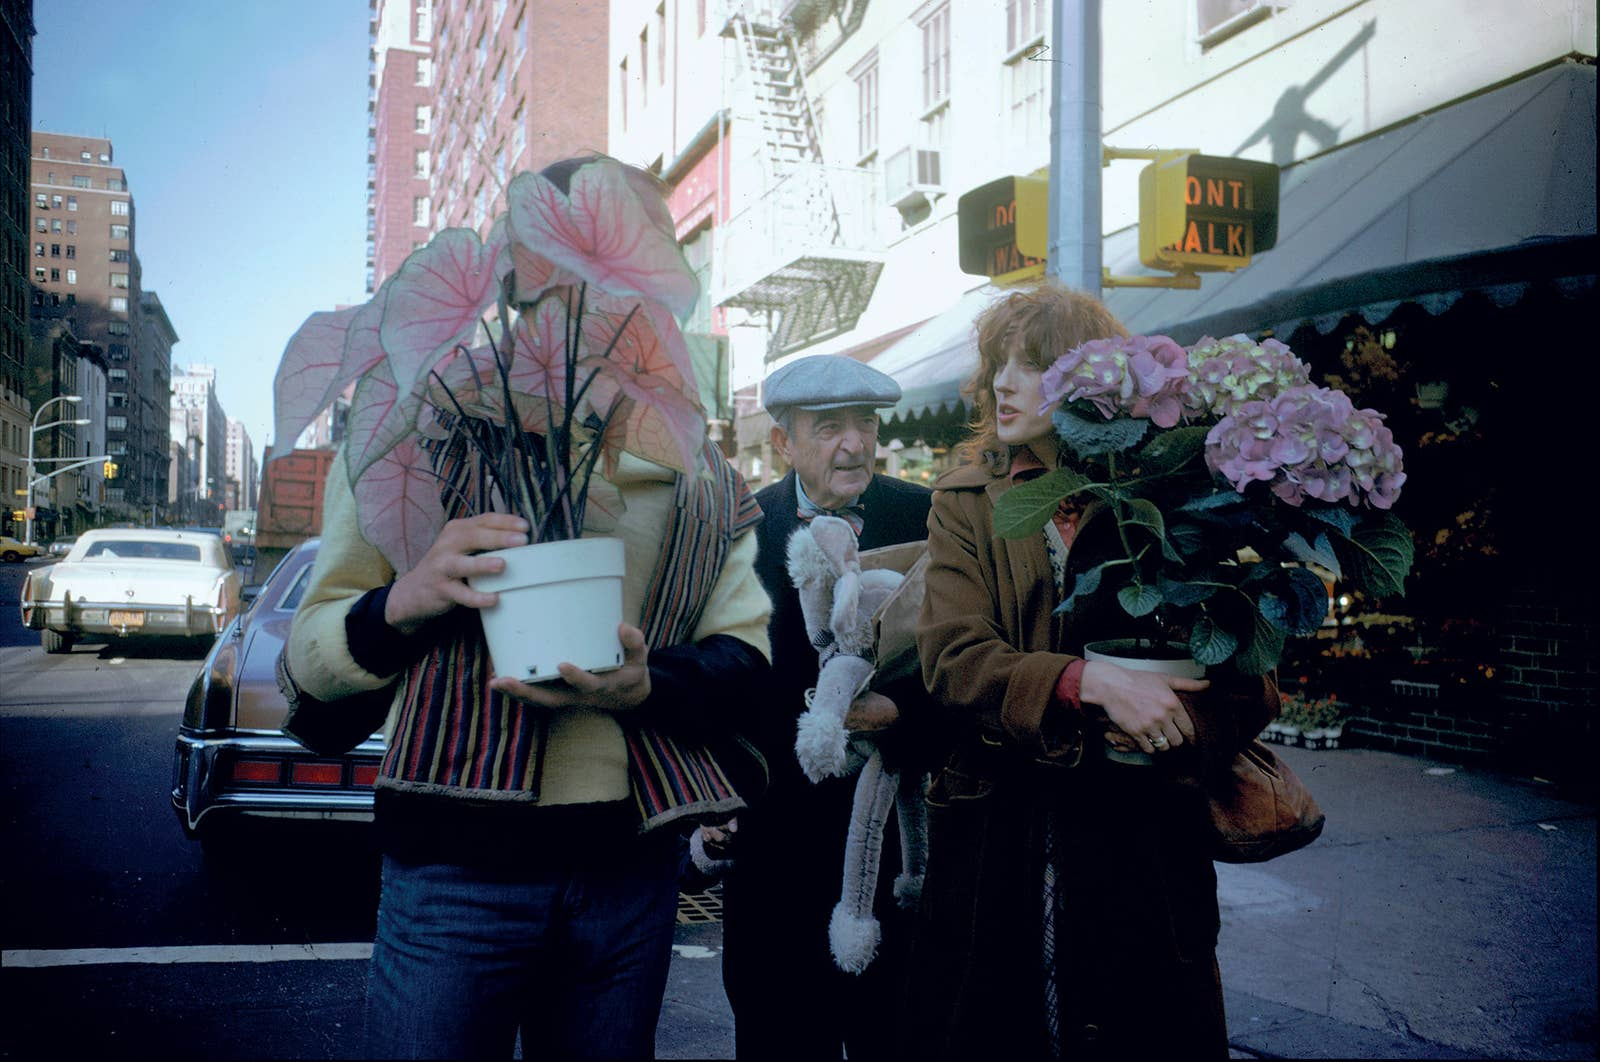 A man and a woman carry flowers on a city street